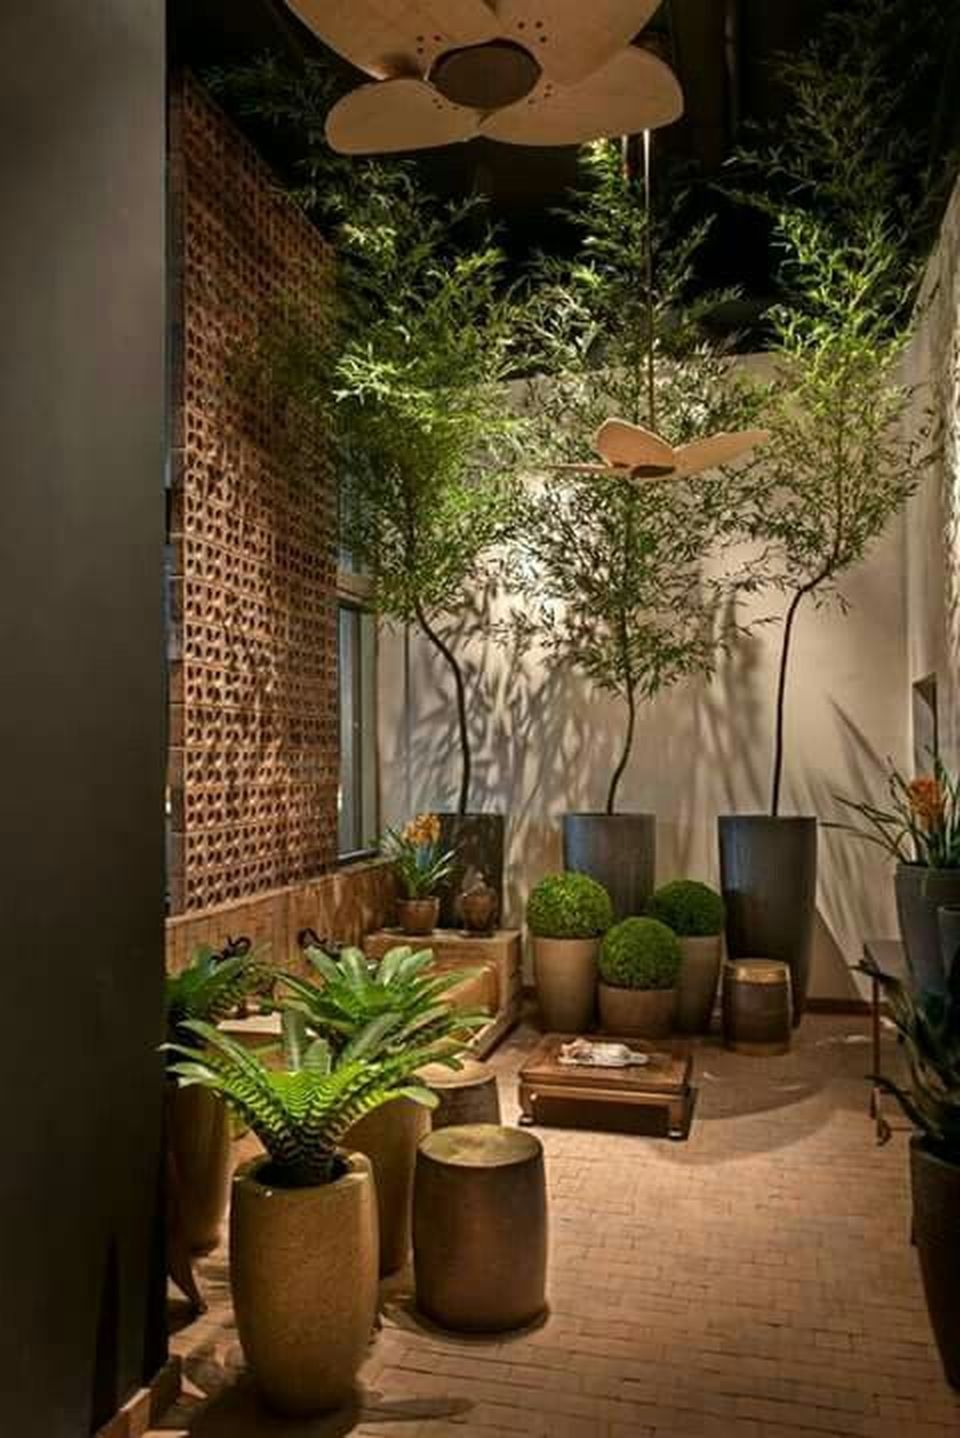 Small courtyard garden with seating area design and layout 67 ...